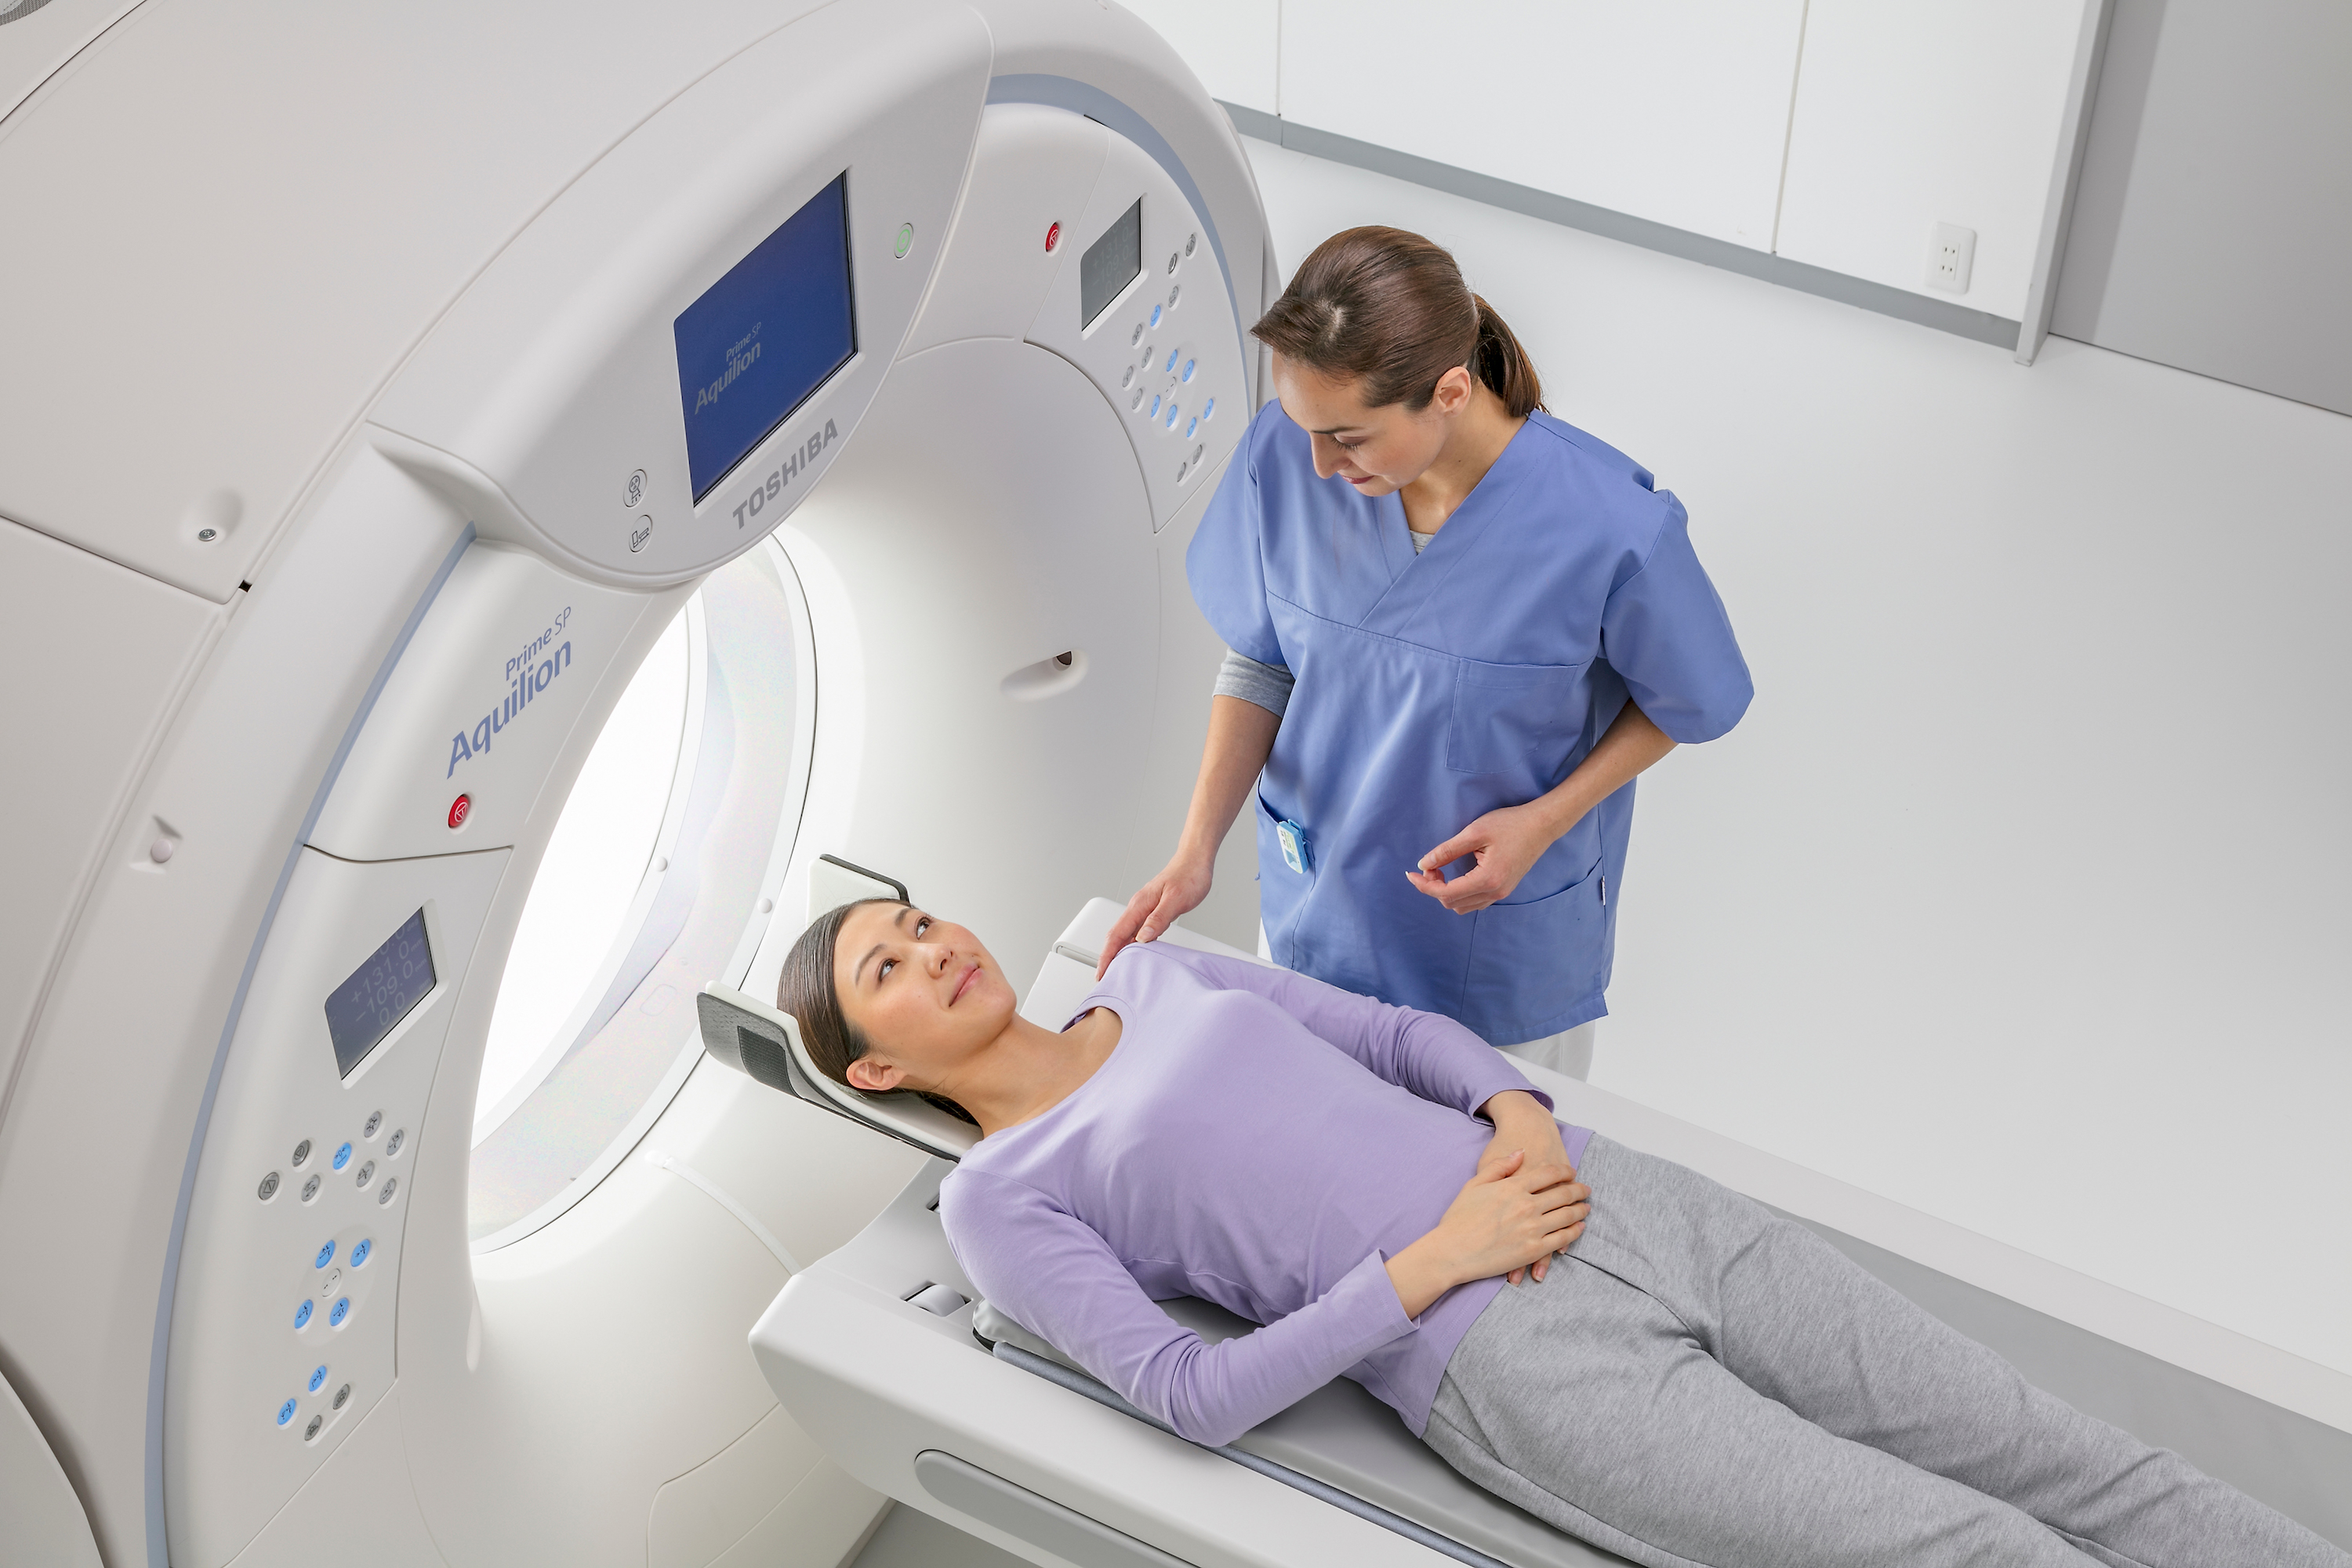 toshiba aquilion ct scanner manual